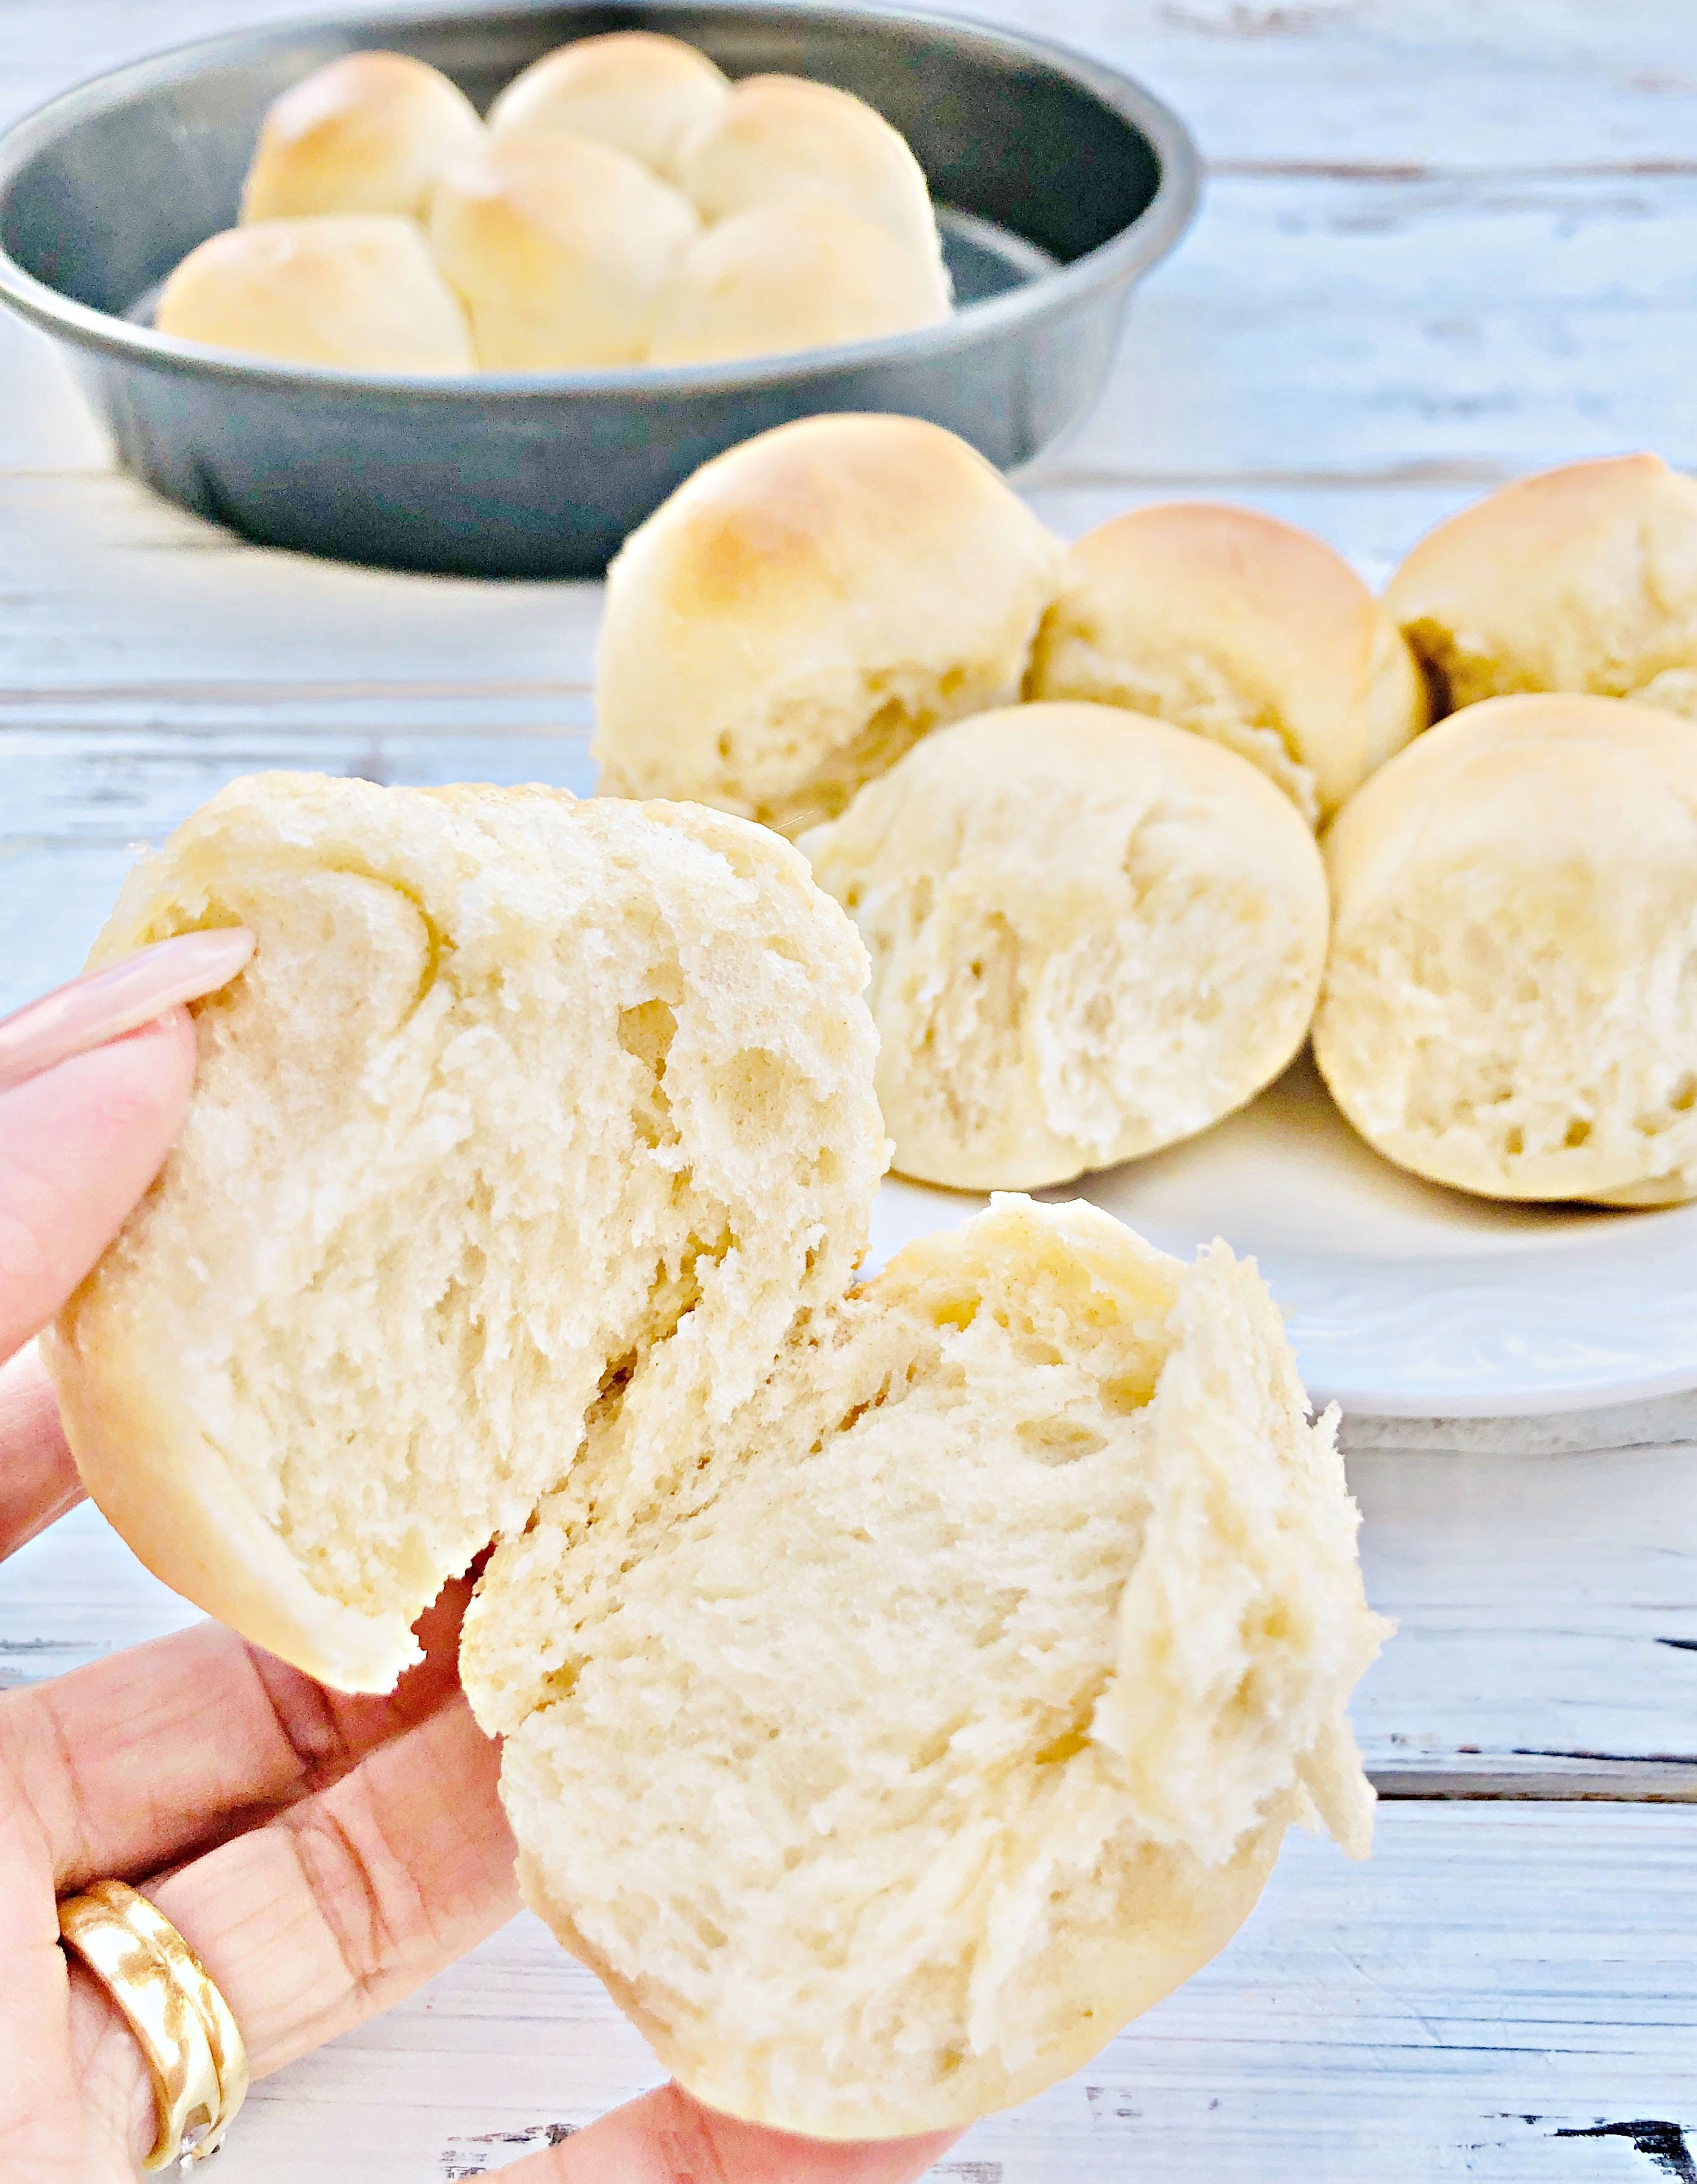 Easy Vegan Pull-Apart Dinner Rolls - Impress your guests with soft and fluffy homemade dinner rolls! Perfect for the holiday dinner table! | thiswifecooks.com #thanksgivingbreadrollrecipe #yeastrolls #dairyfreedinnerrolls #veganthanksgivingrecipes #thiswifecooksrecipes via @thiswifecooks